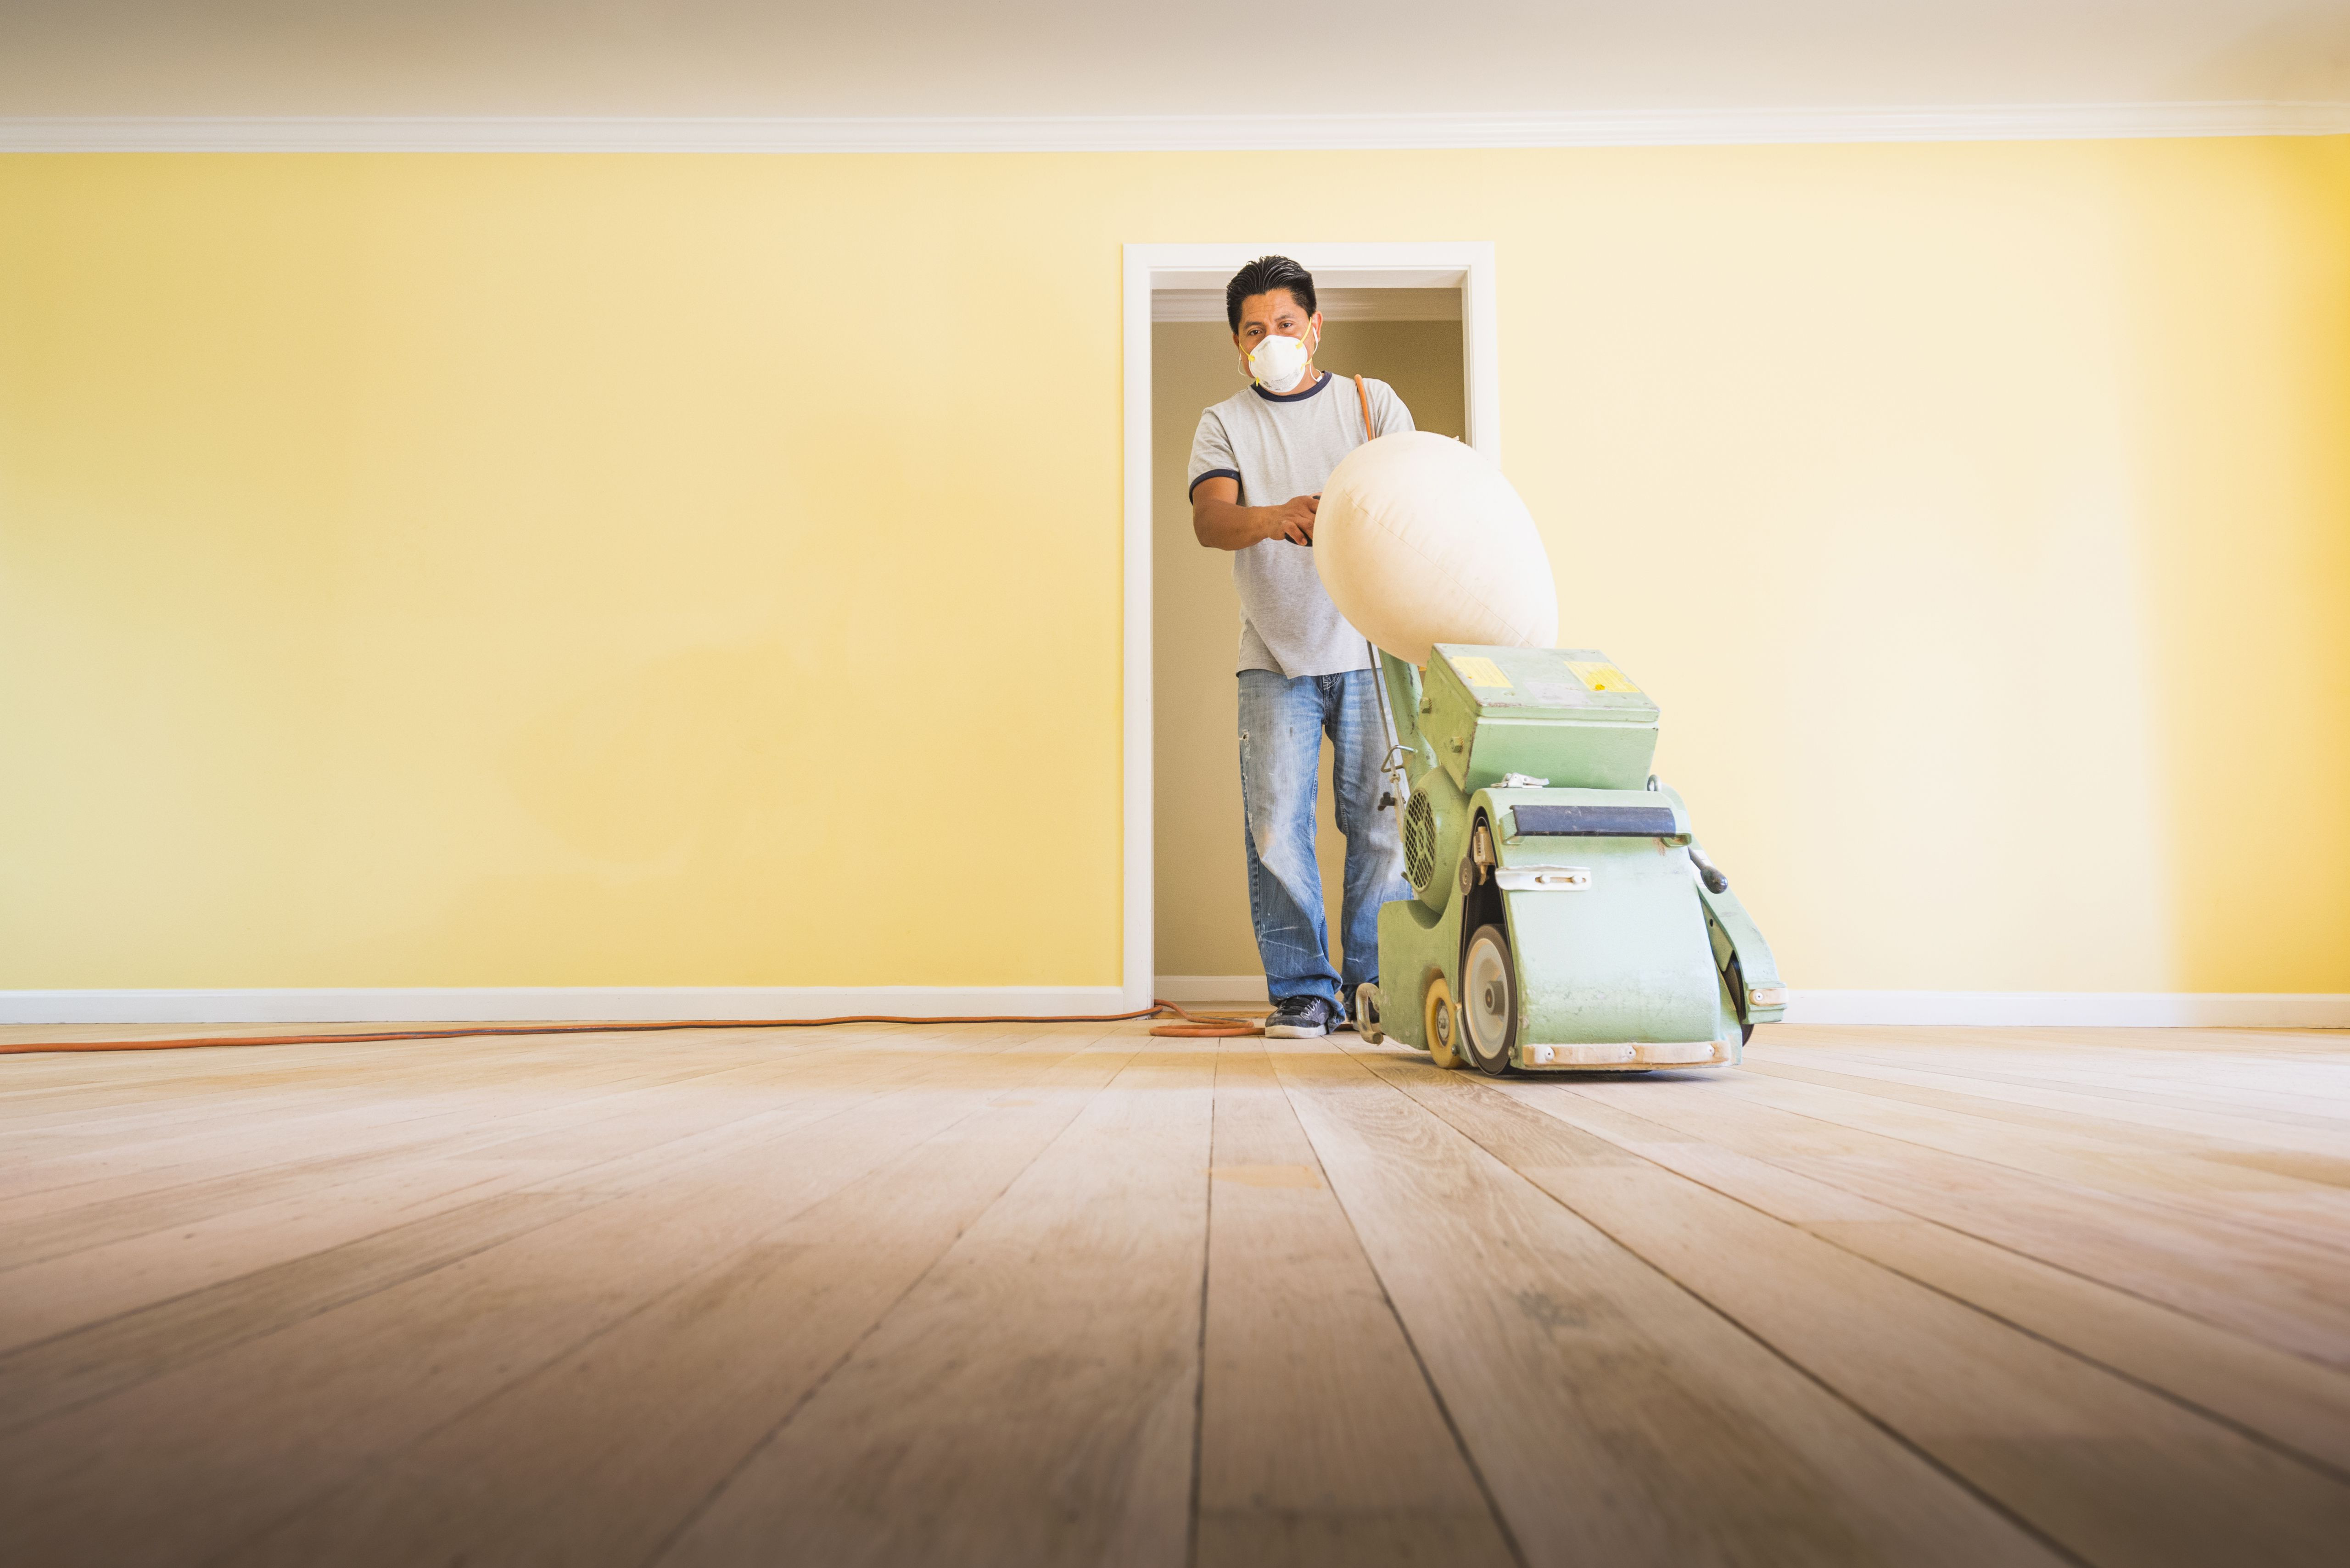 how to select hardwood floor color of should you paint walls or refinish floors first throughout floorsandingafterpainting 5a8f08dfae9ab80037d9d878